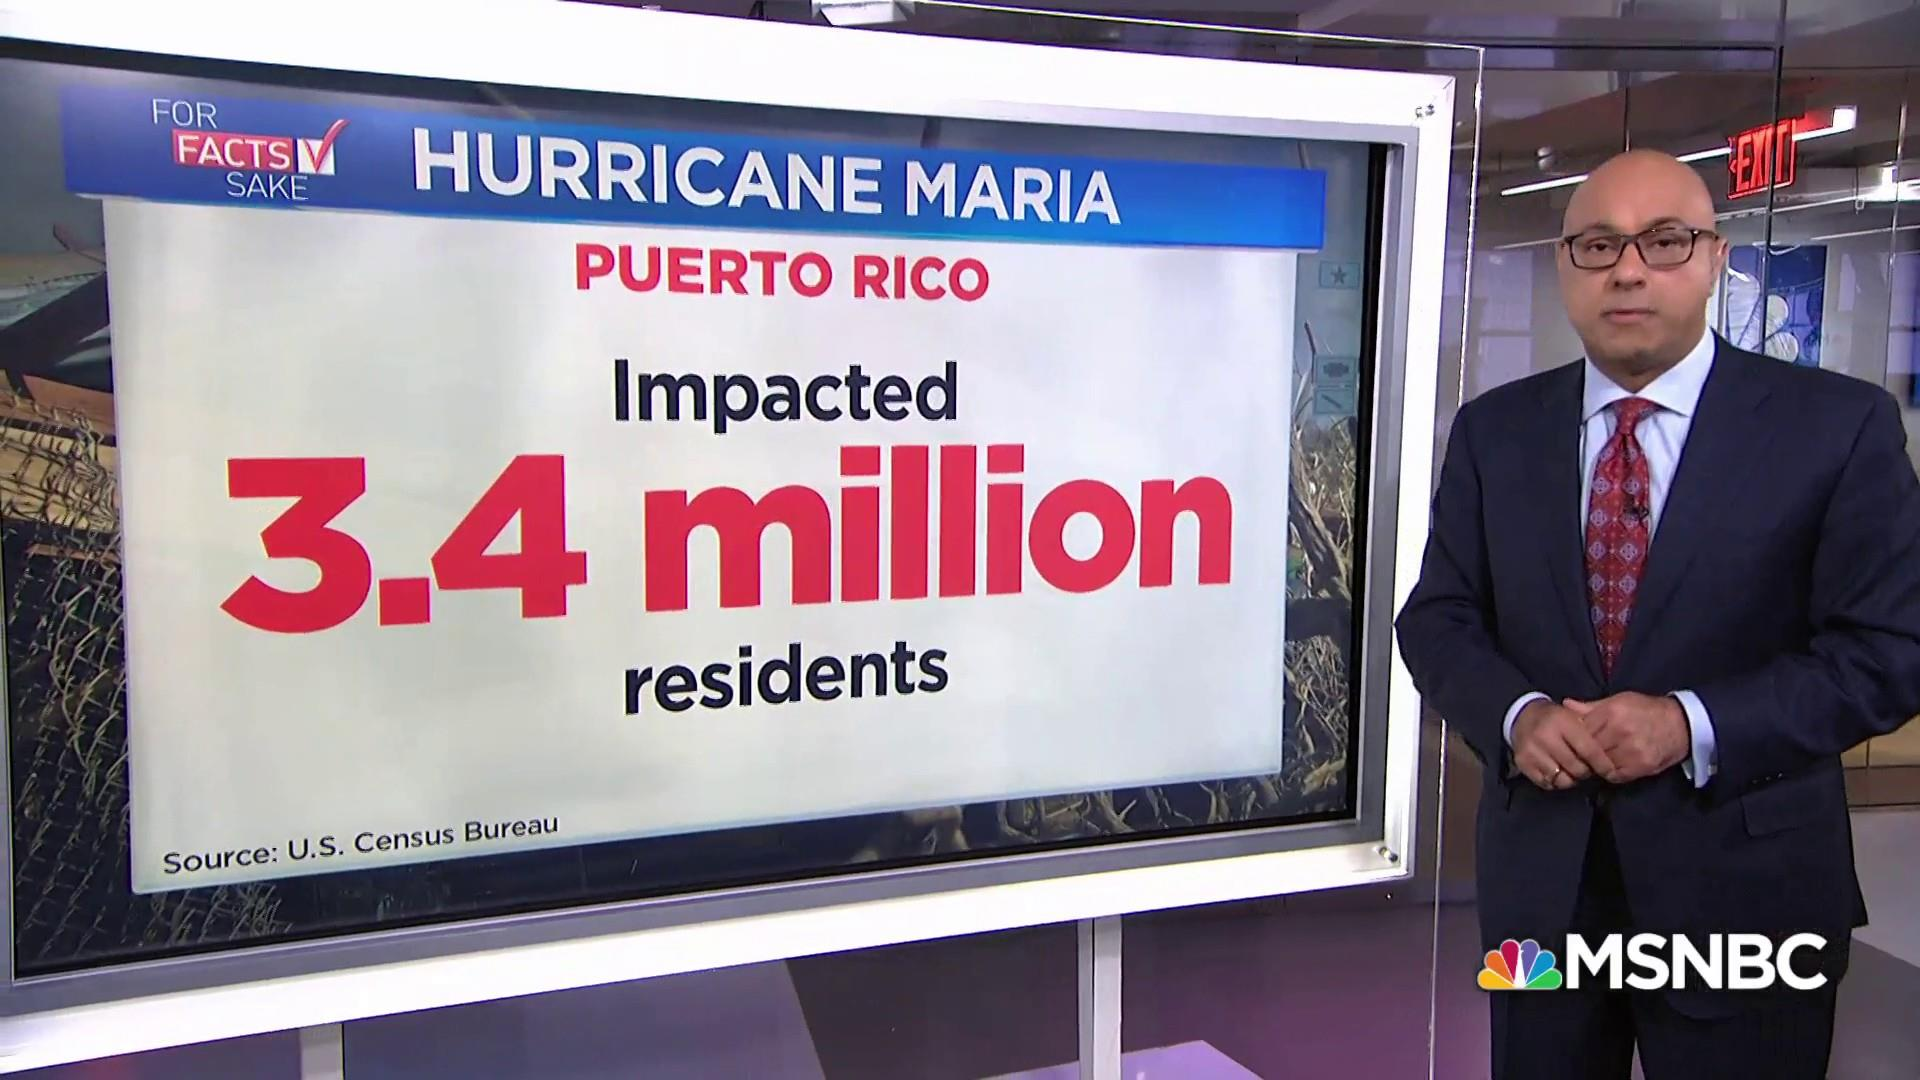 Hurricane Maria now the most devastating storm to hit the U.S.